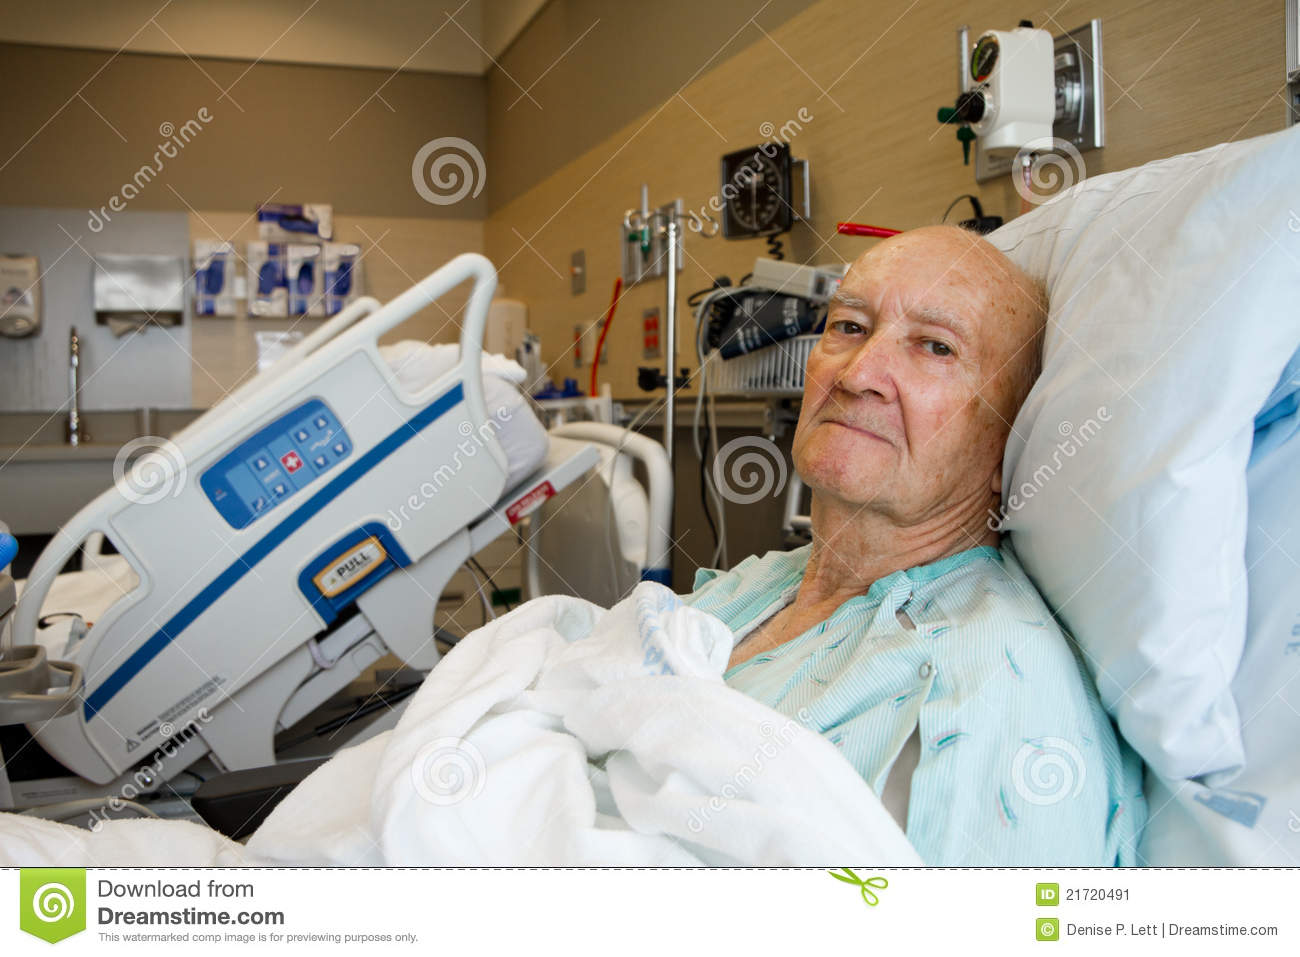 Sick Patient In Hospital Bed : male patient sitting up in a very modern hospital room. Hospital bed ...